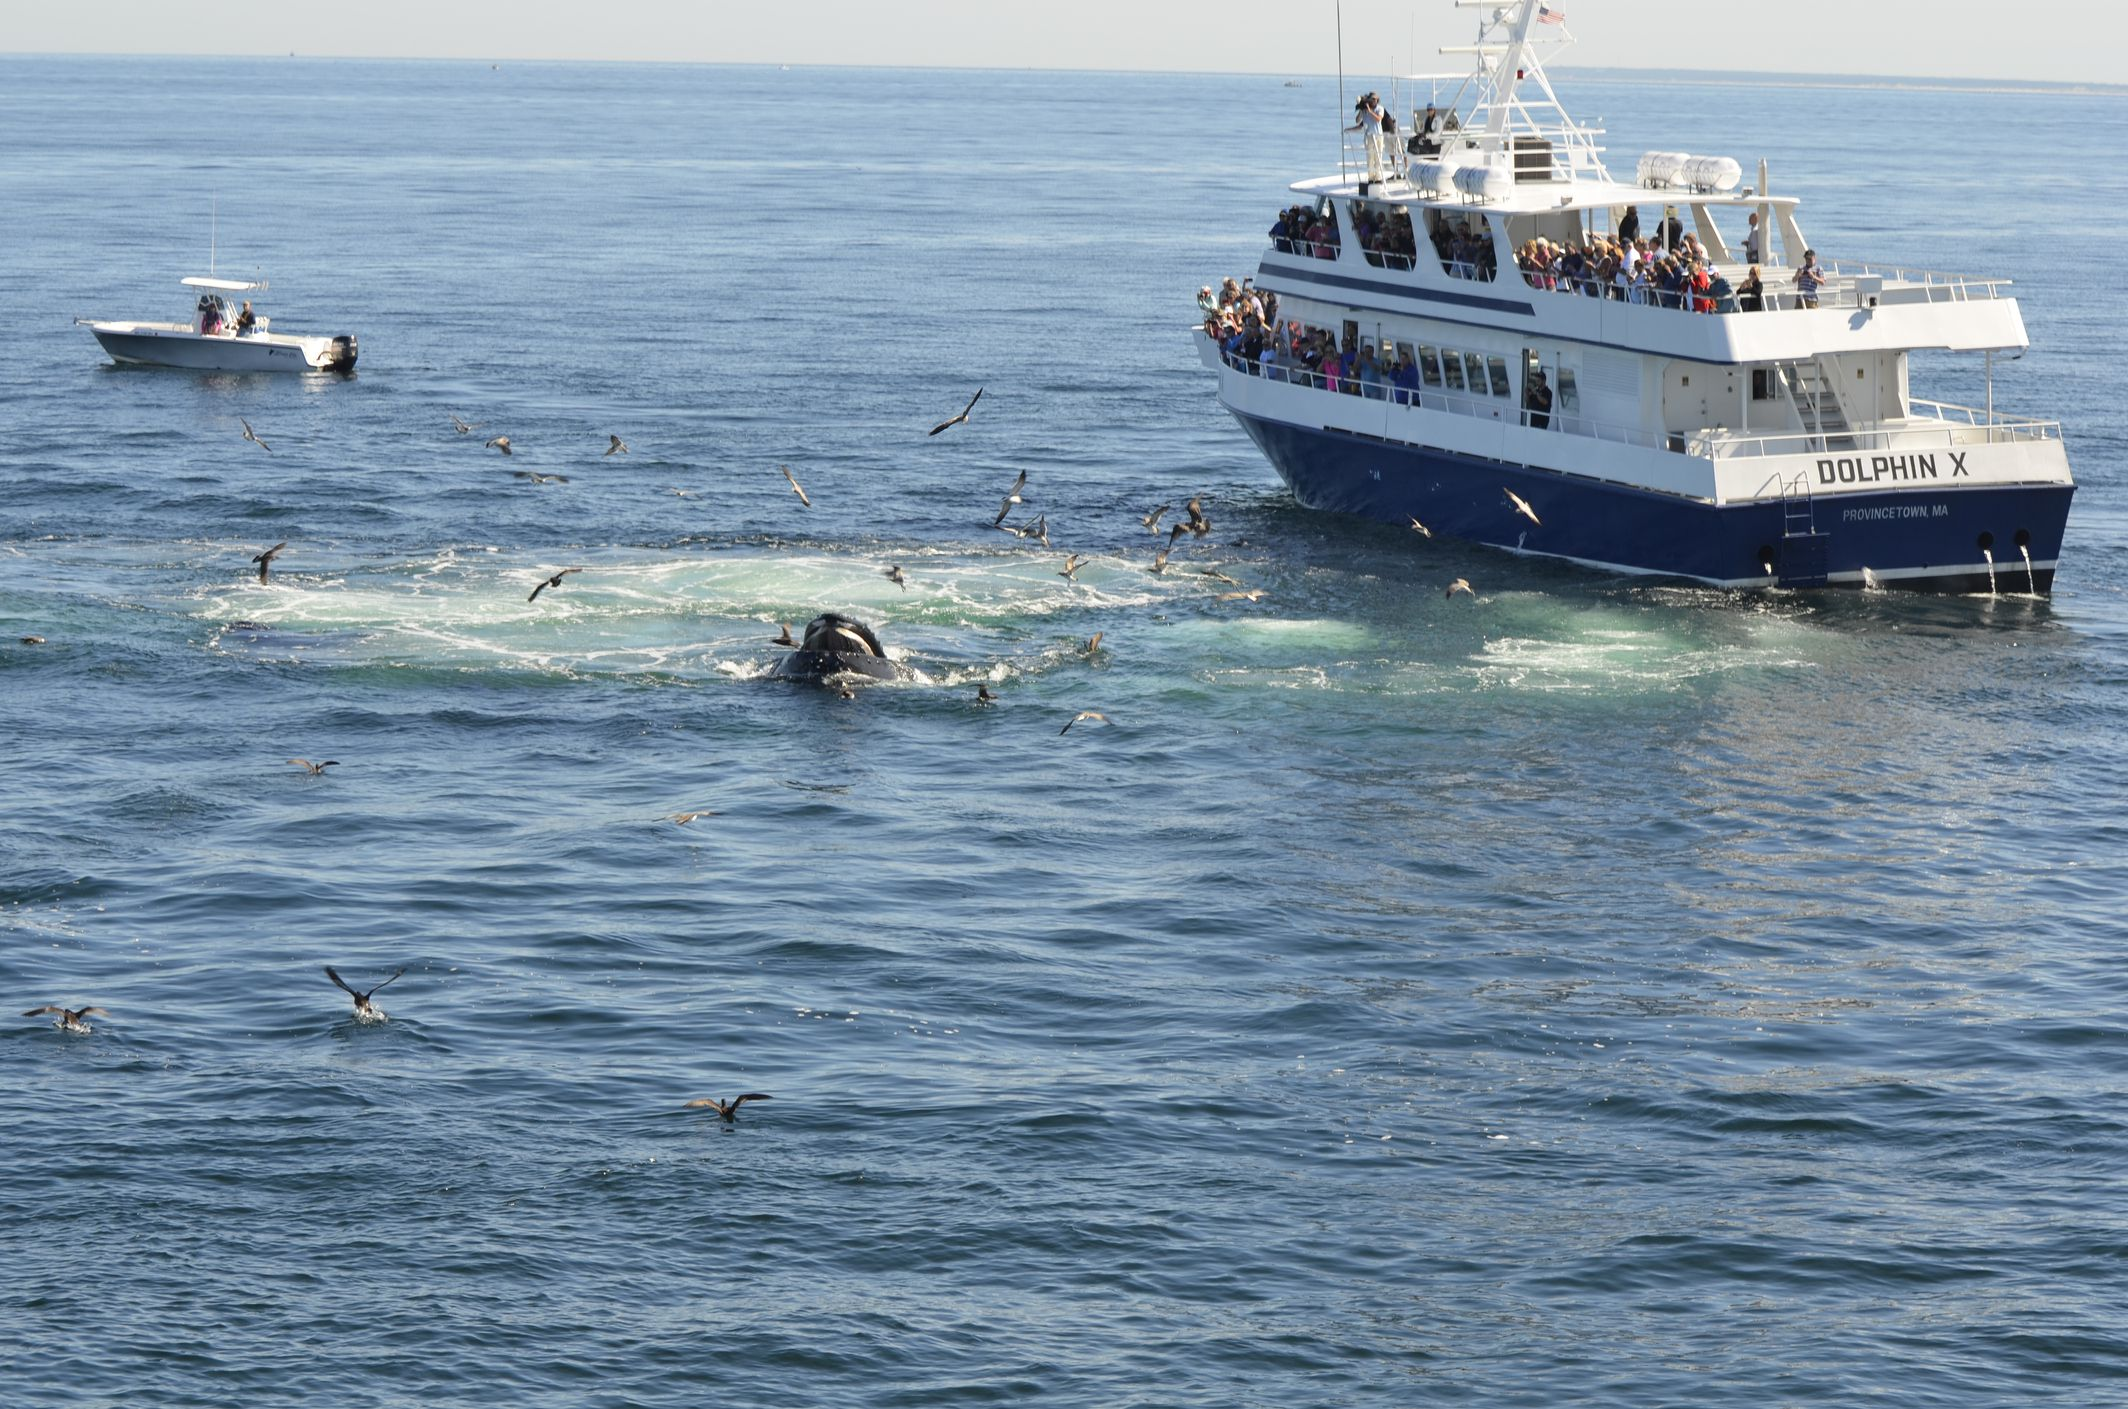 The 7 Best New England Whale Watching Tours to Book in 2018